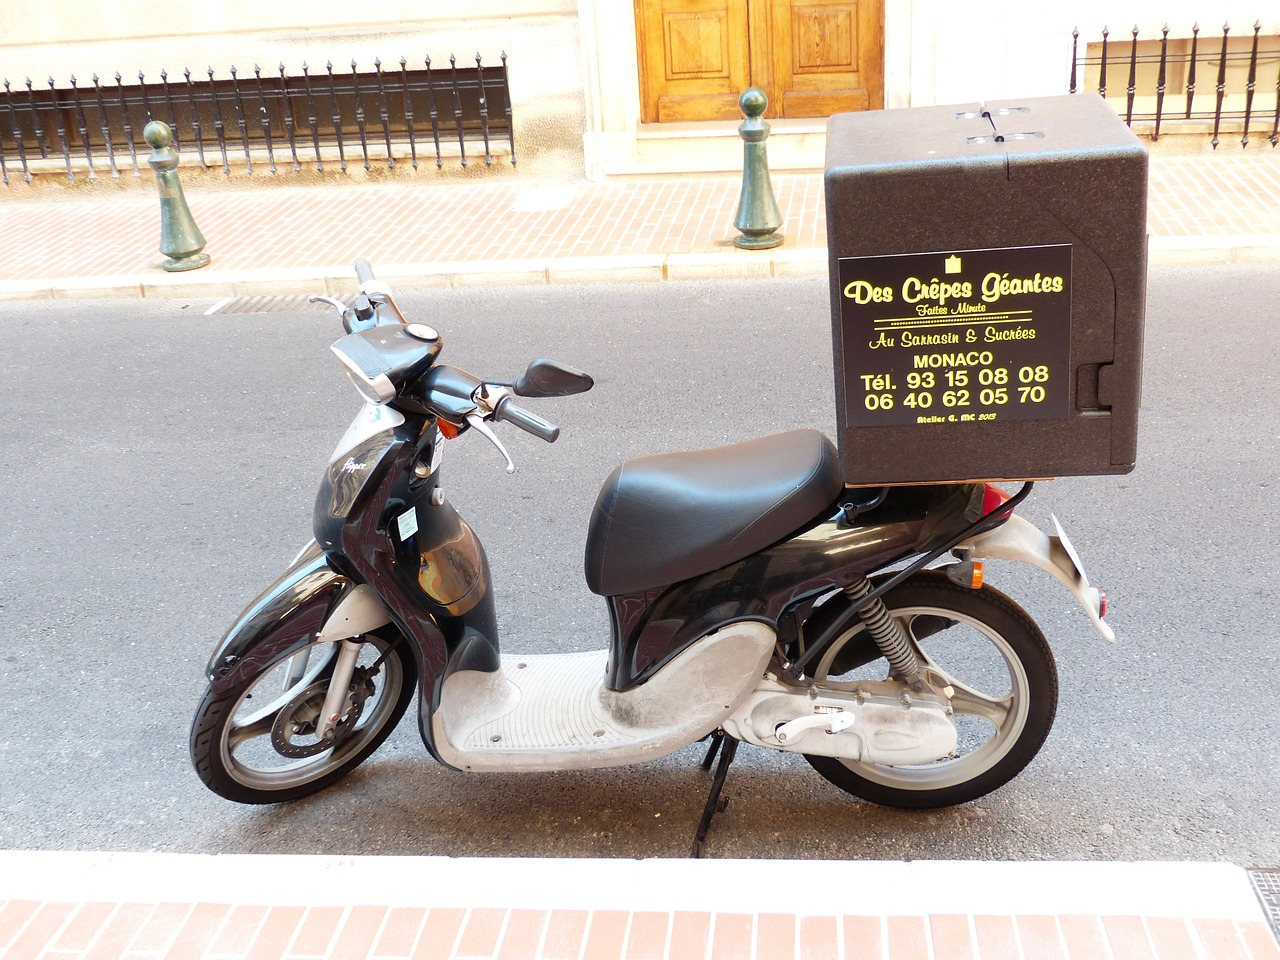 pizza service pizza supplier motorcycle free photo